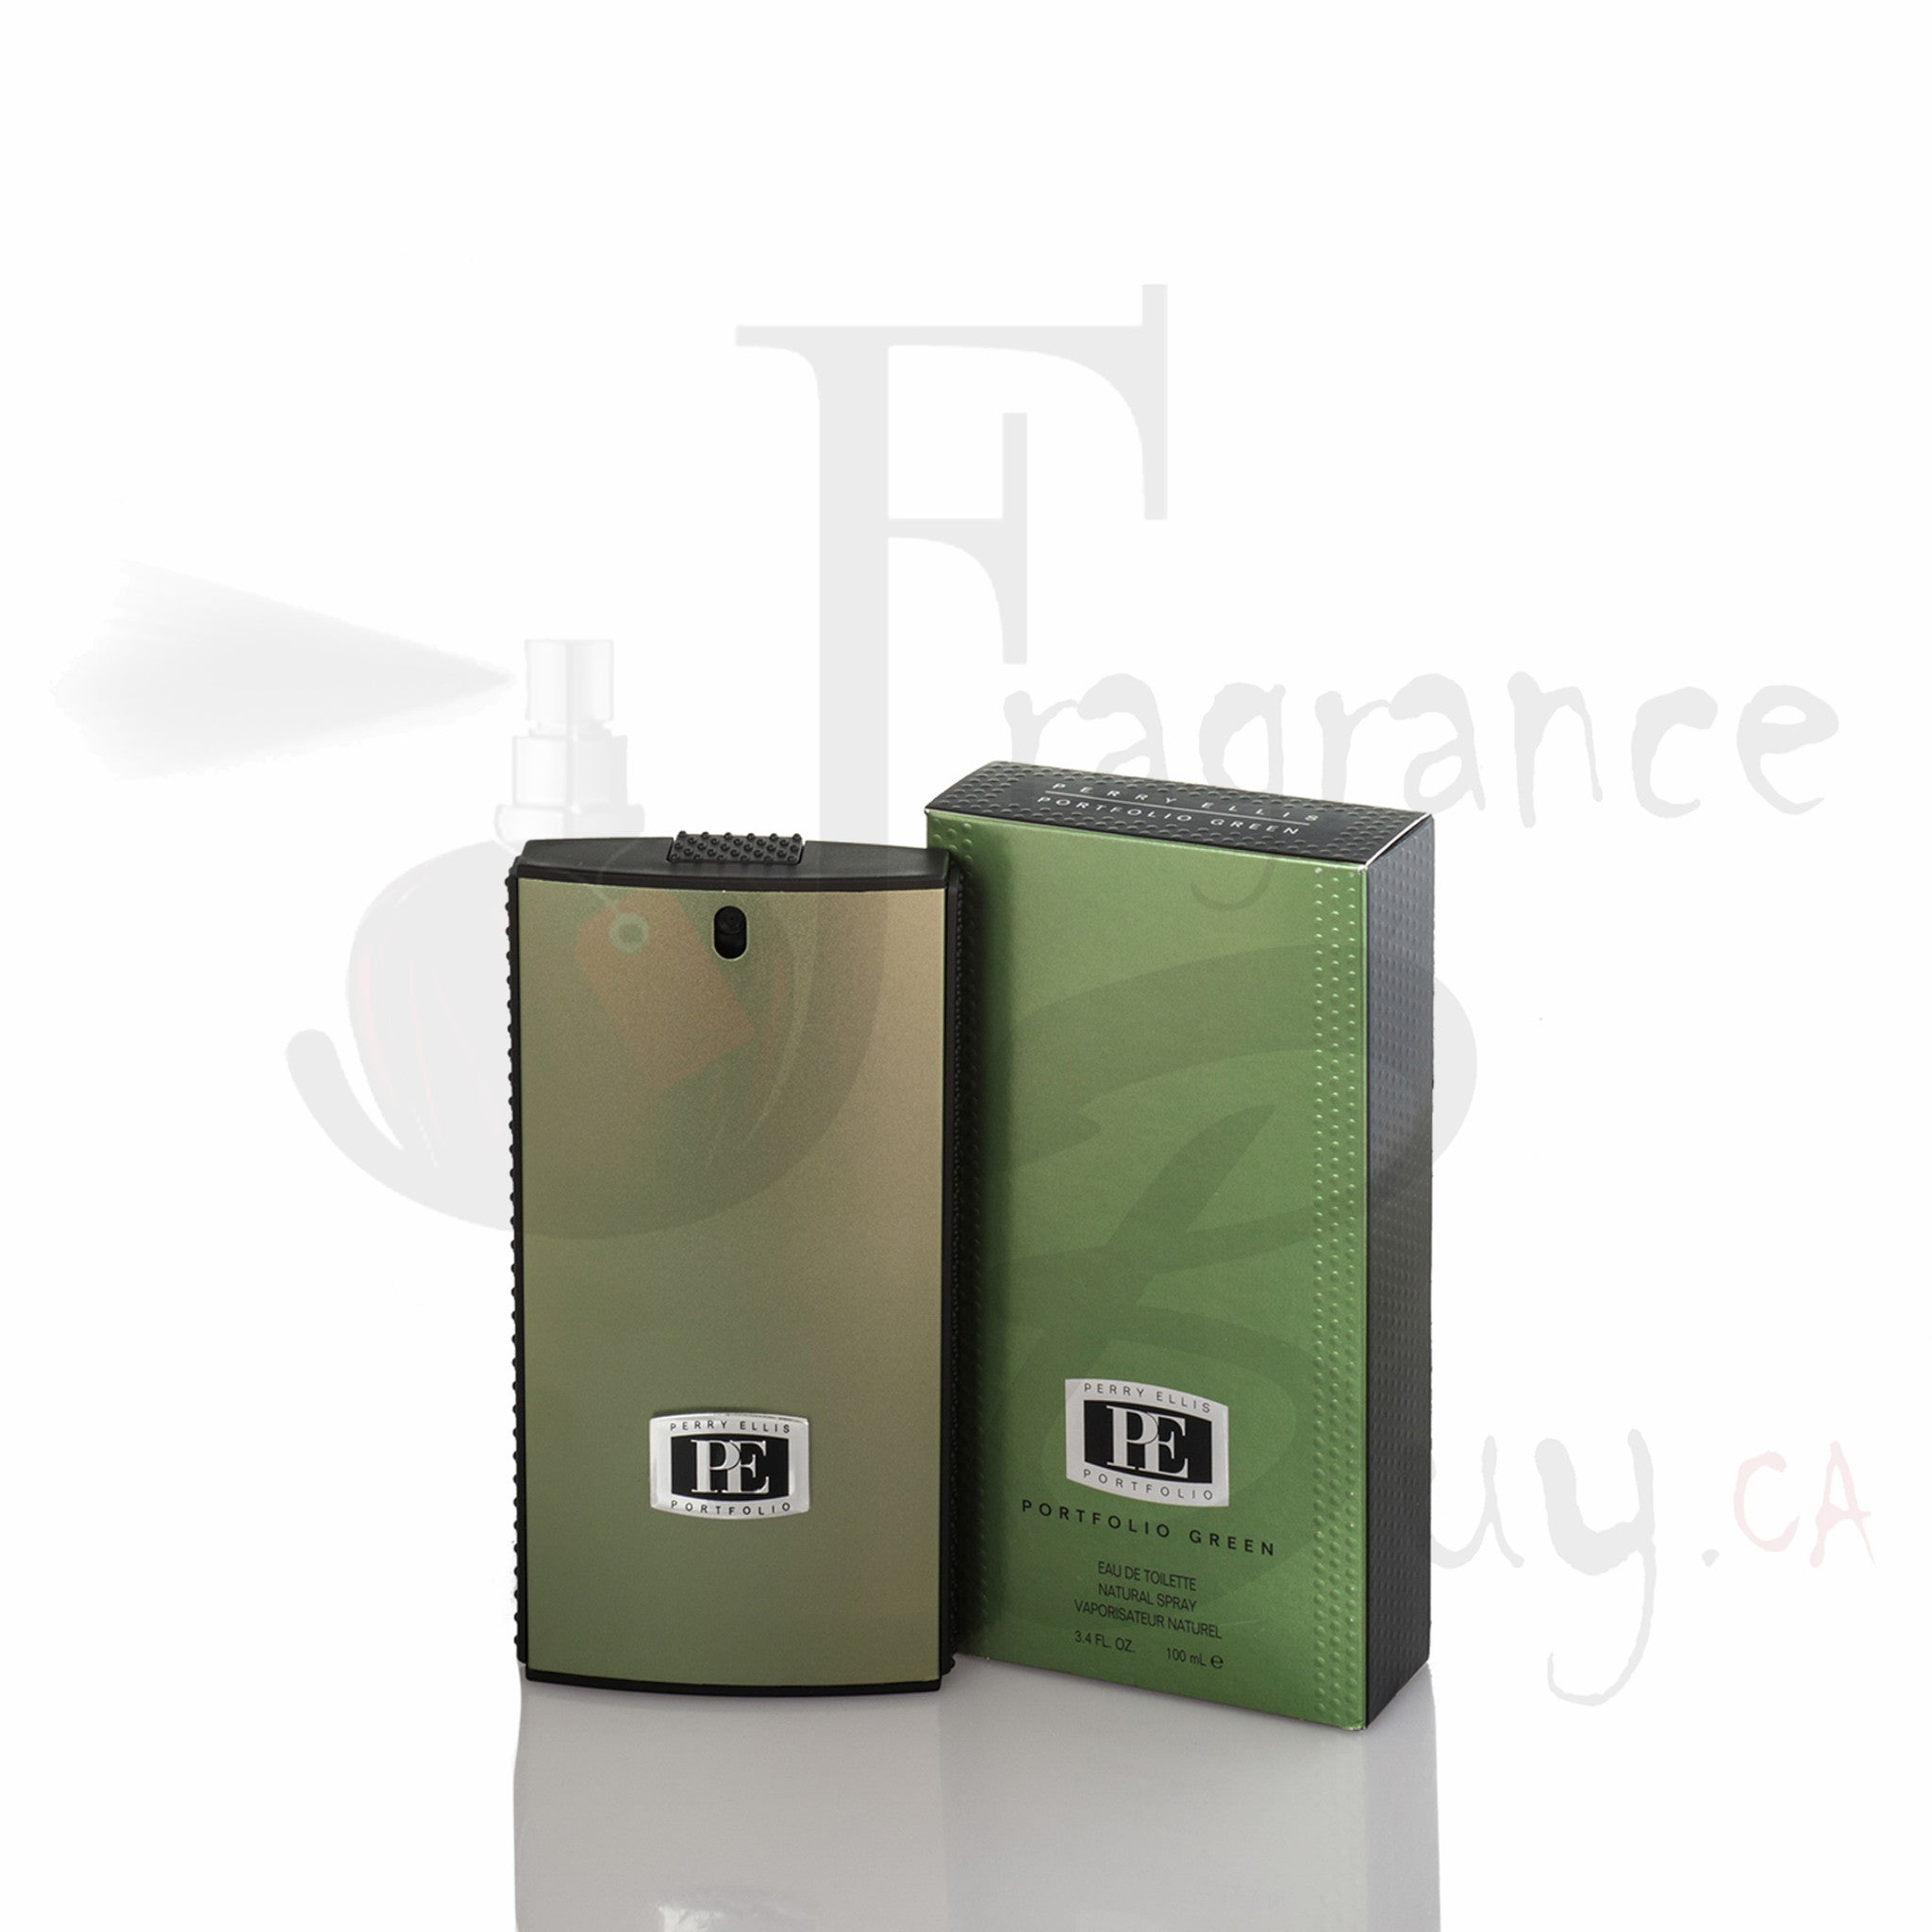 Perry Ellis Portfolio (Green) Cologne